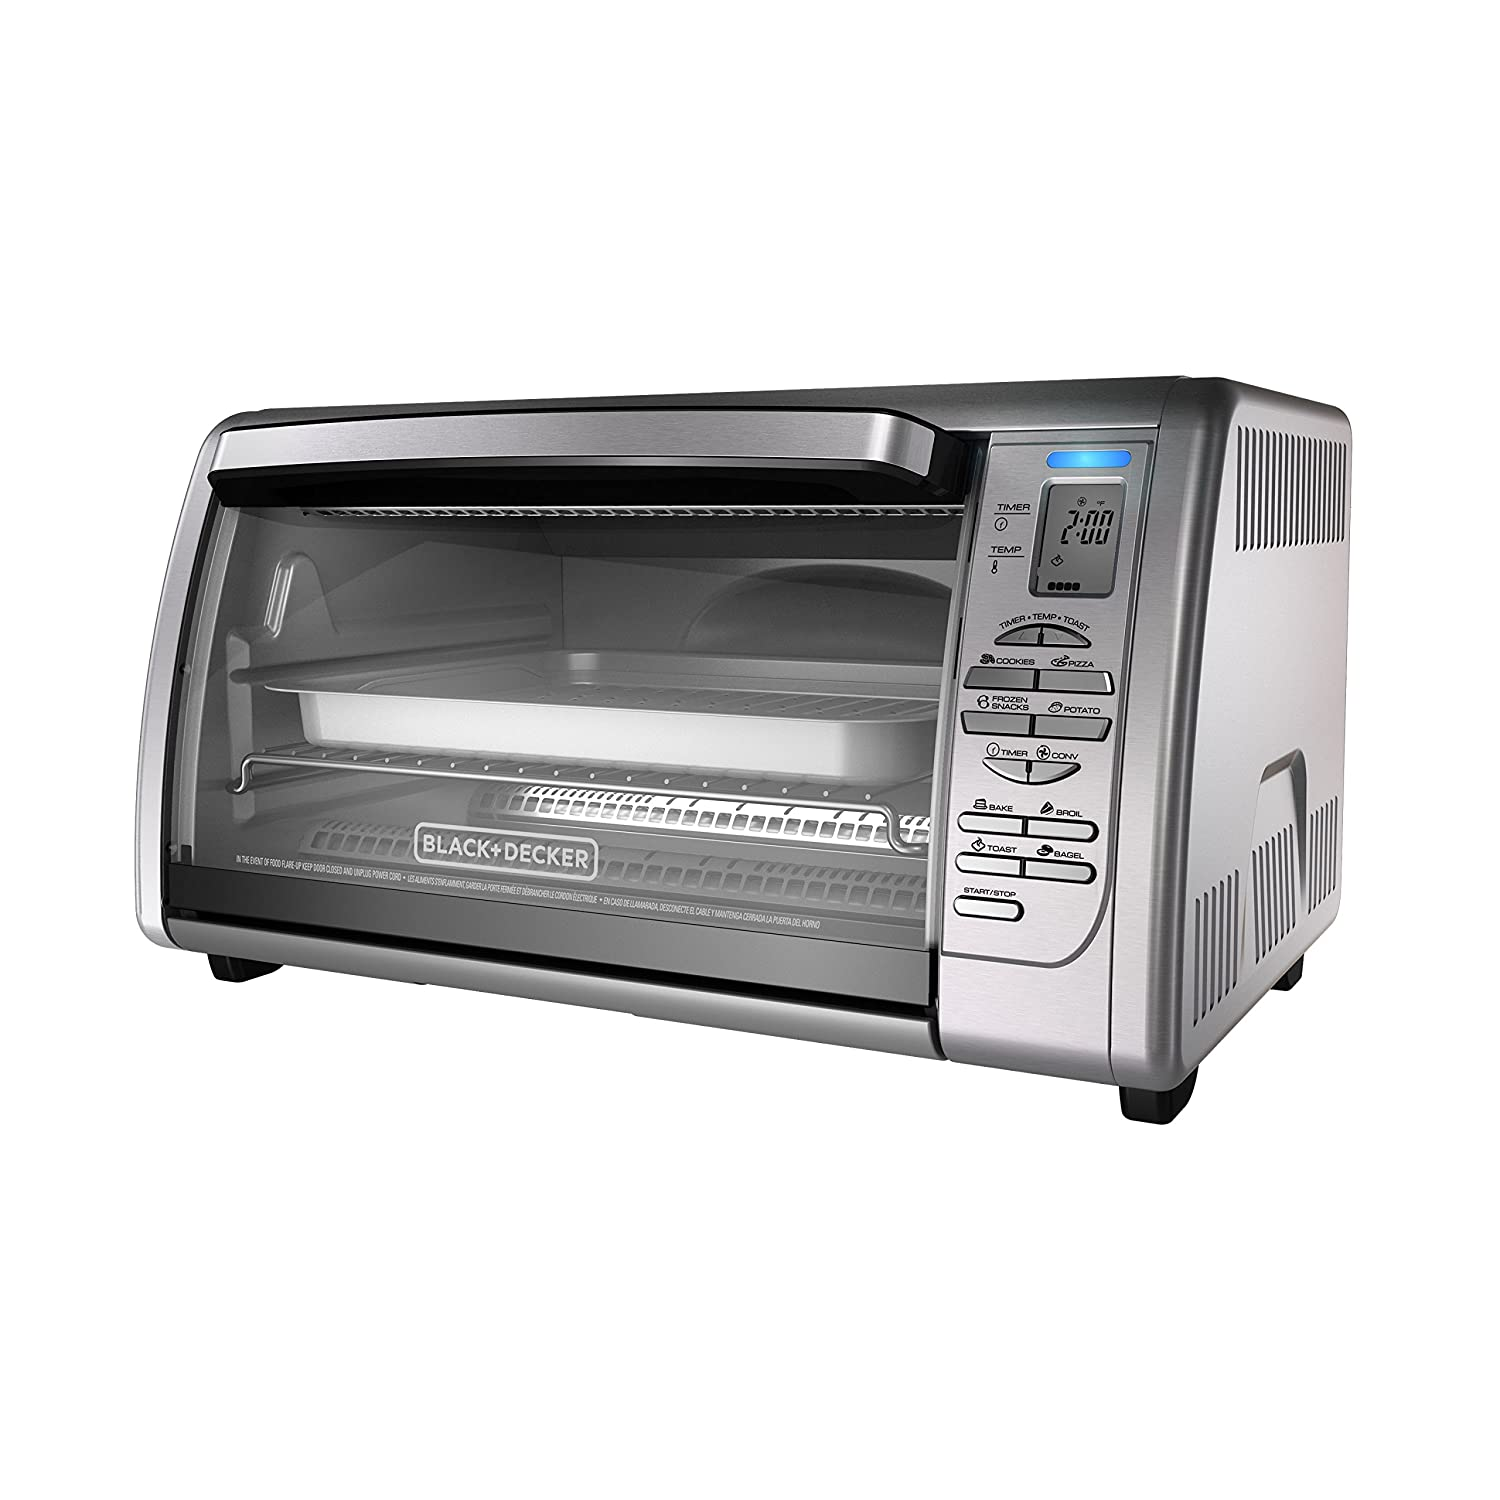 Best Countertop Convection Oven Reviews 2019: Top 5+ Recommended 6 #cookymom